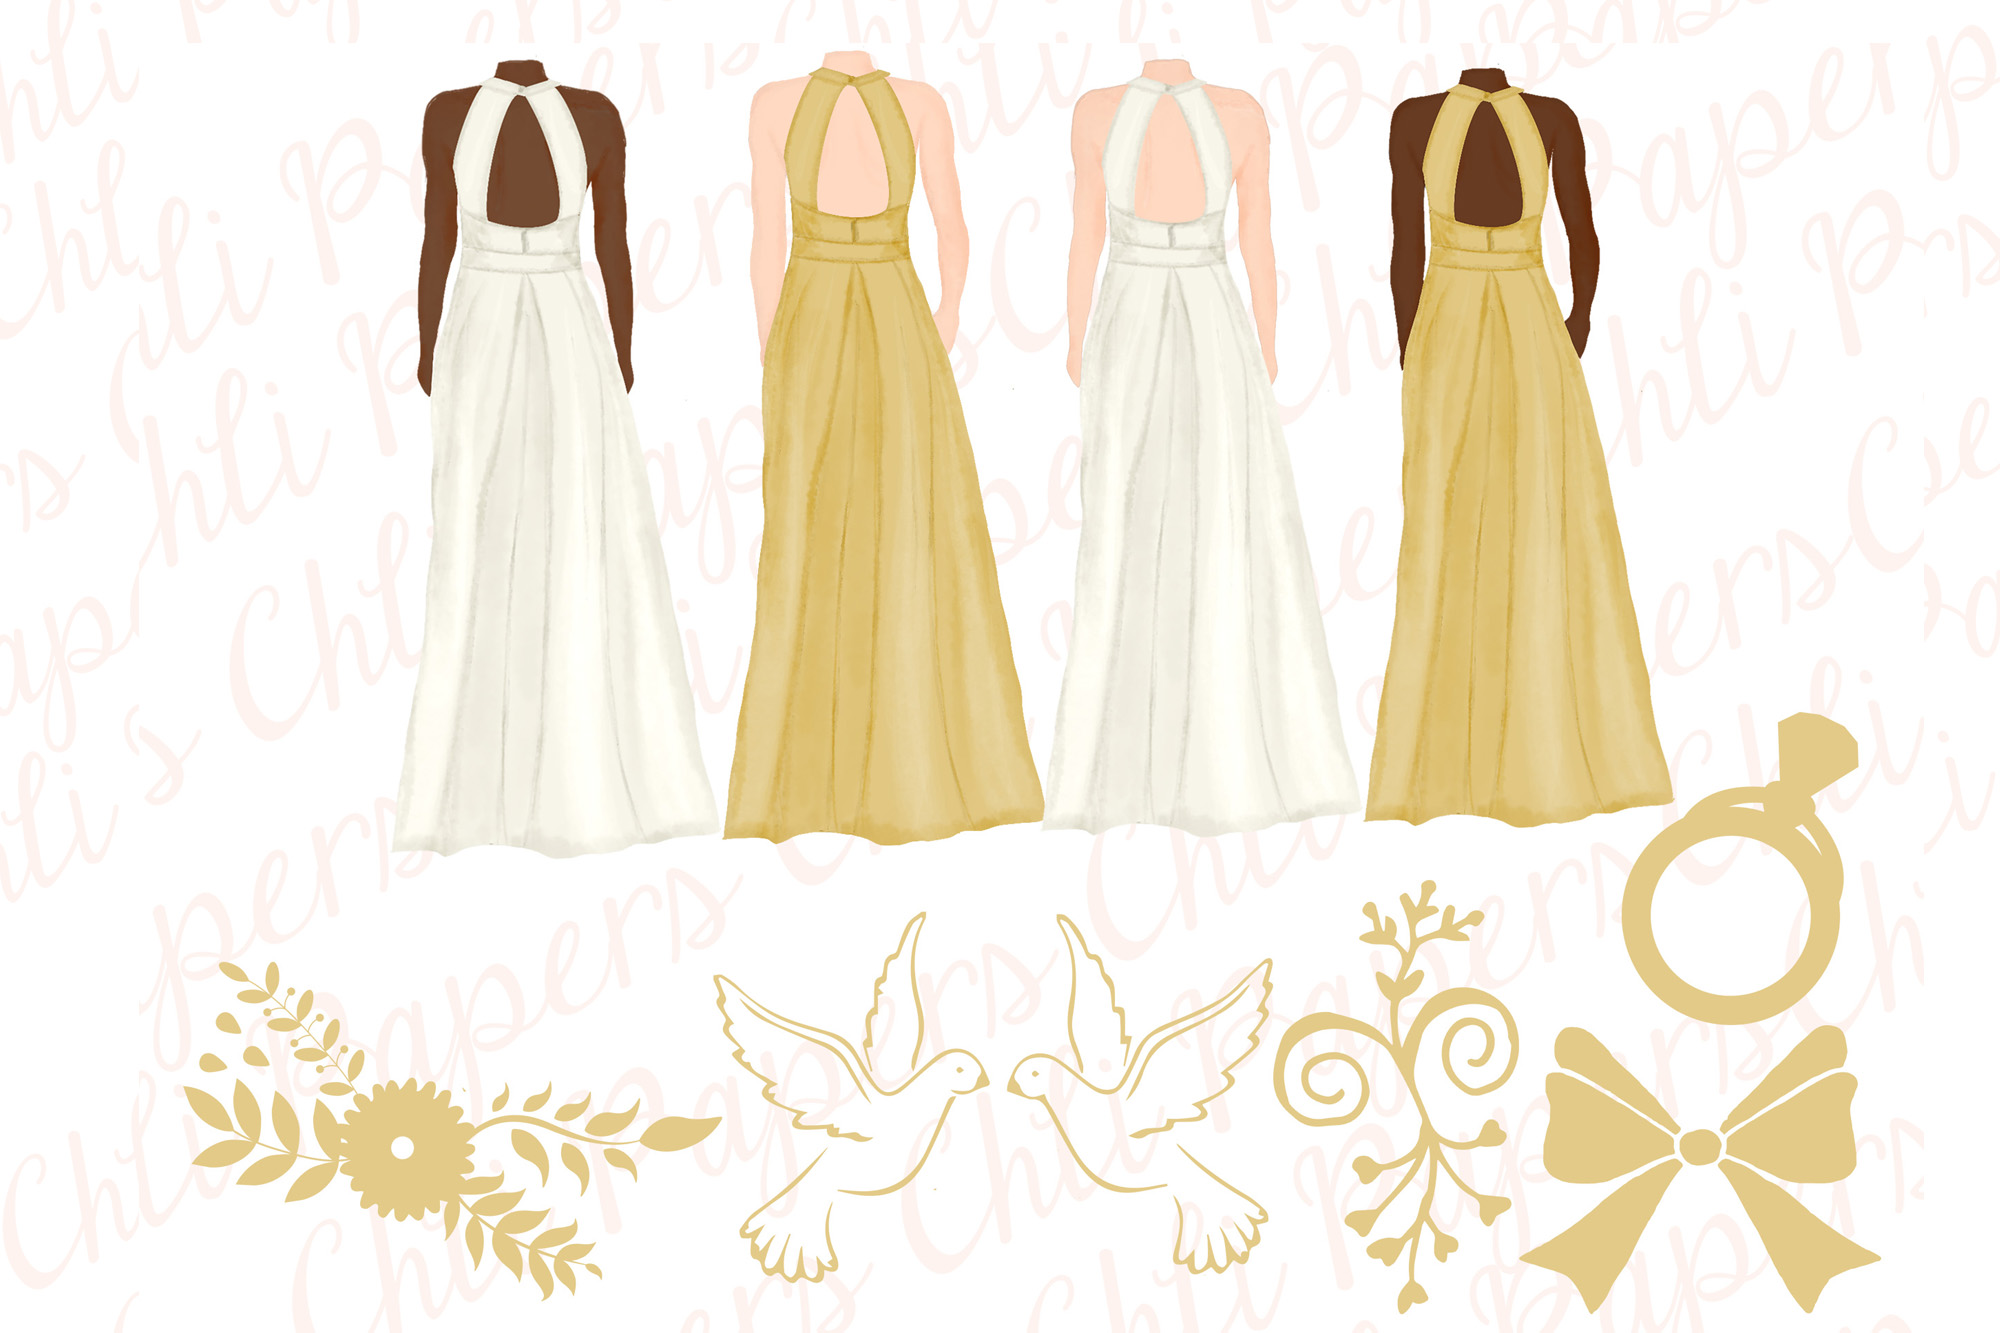 Bride and Bridesmaids clipart,Wedding clipart,Bridal clipart example image 3